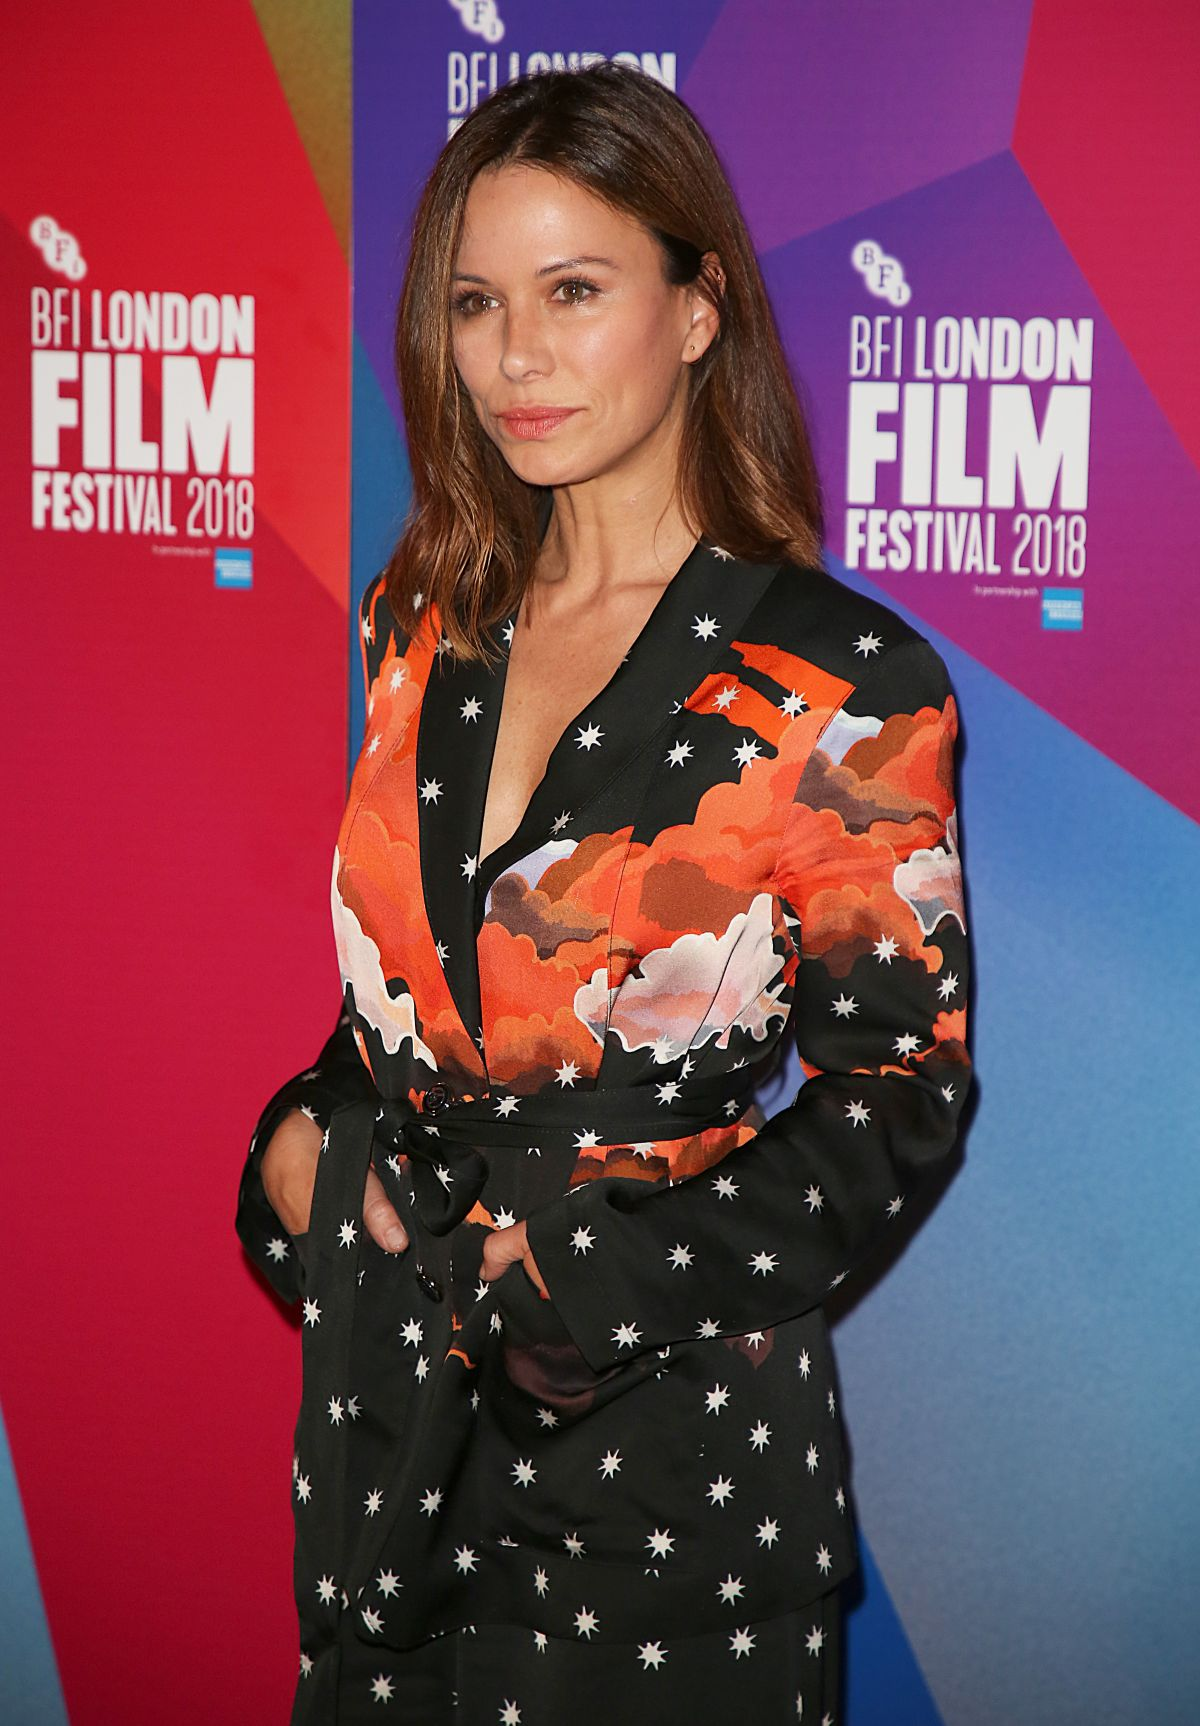 RHONA MITRA at The Fight Premiere at BFI London Film